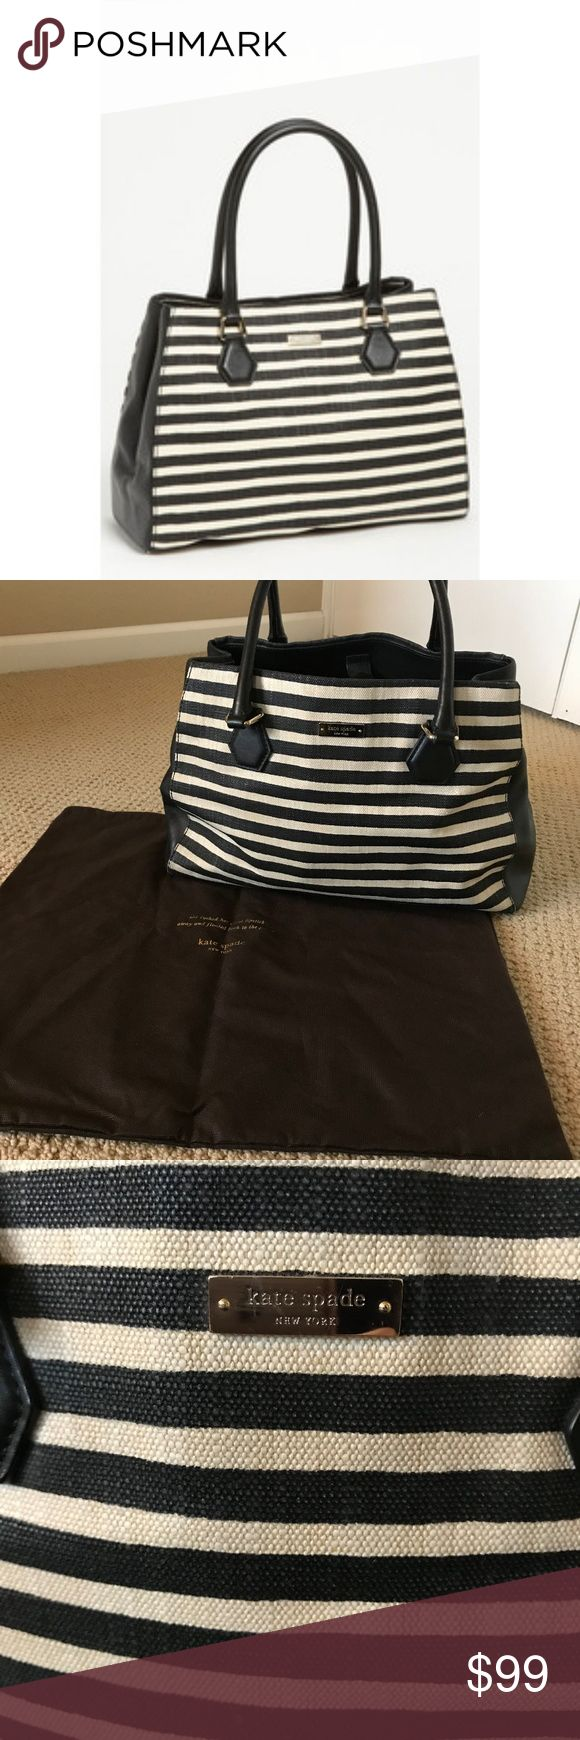 Kate Spade Catherine Street Louise Black/White Bag Black and white striped Catherine Street Louise purse in good condition. No stains or problems but slightly slouchy from use. Closes with a magnetic clasp (see last photo). Comes with original Kate Spade storage bag. kate spade Bags Satchels